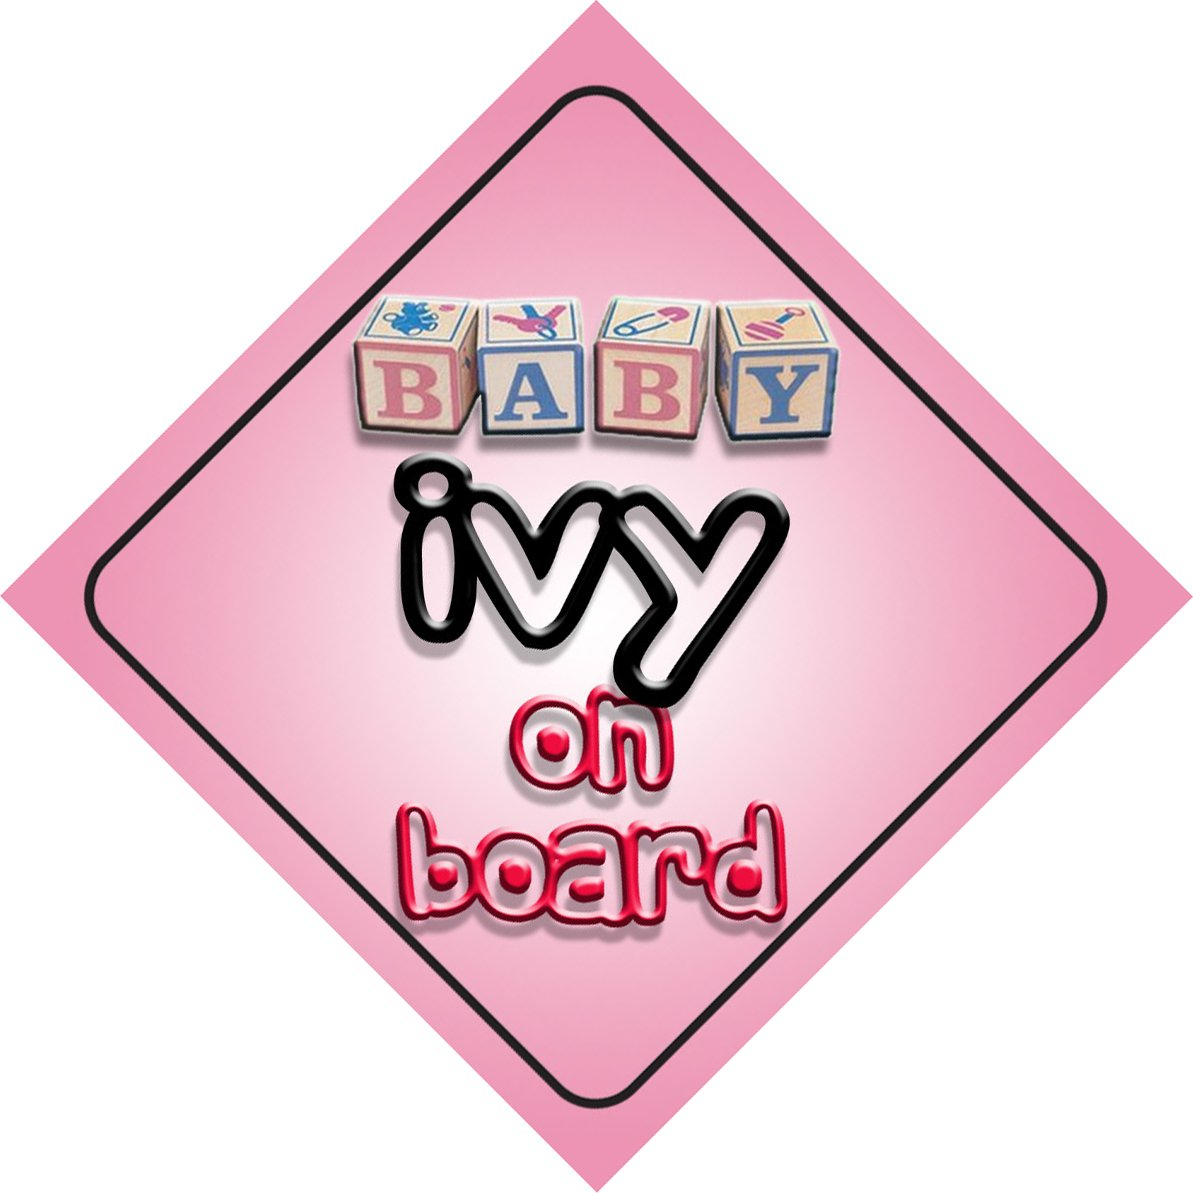 Baby Girl Ivy on board novelty car sign gift//present for new child//newborn baby